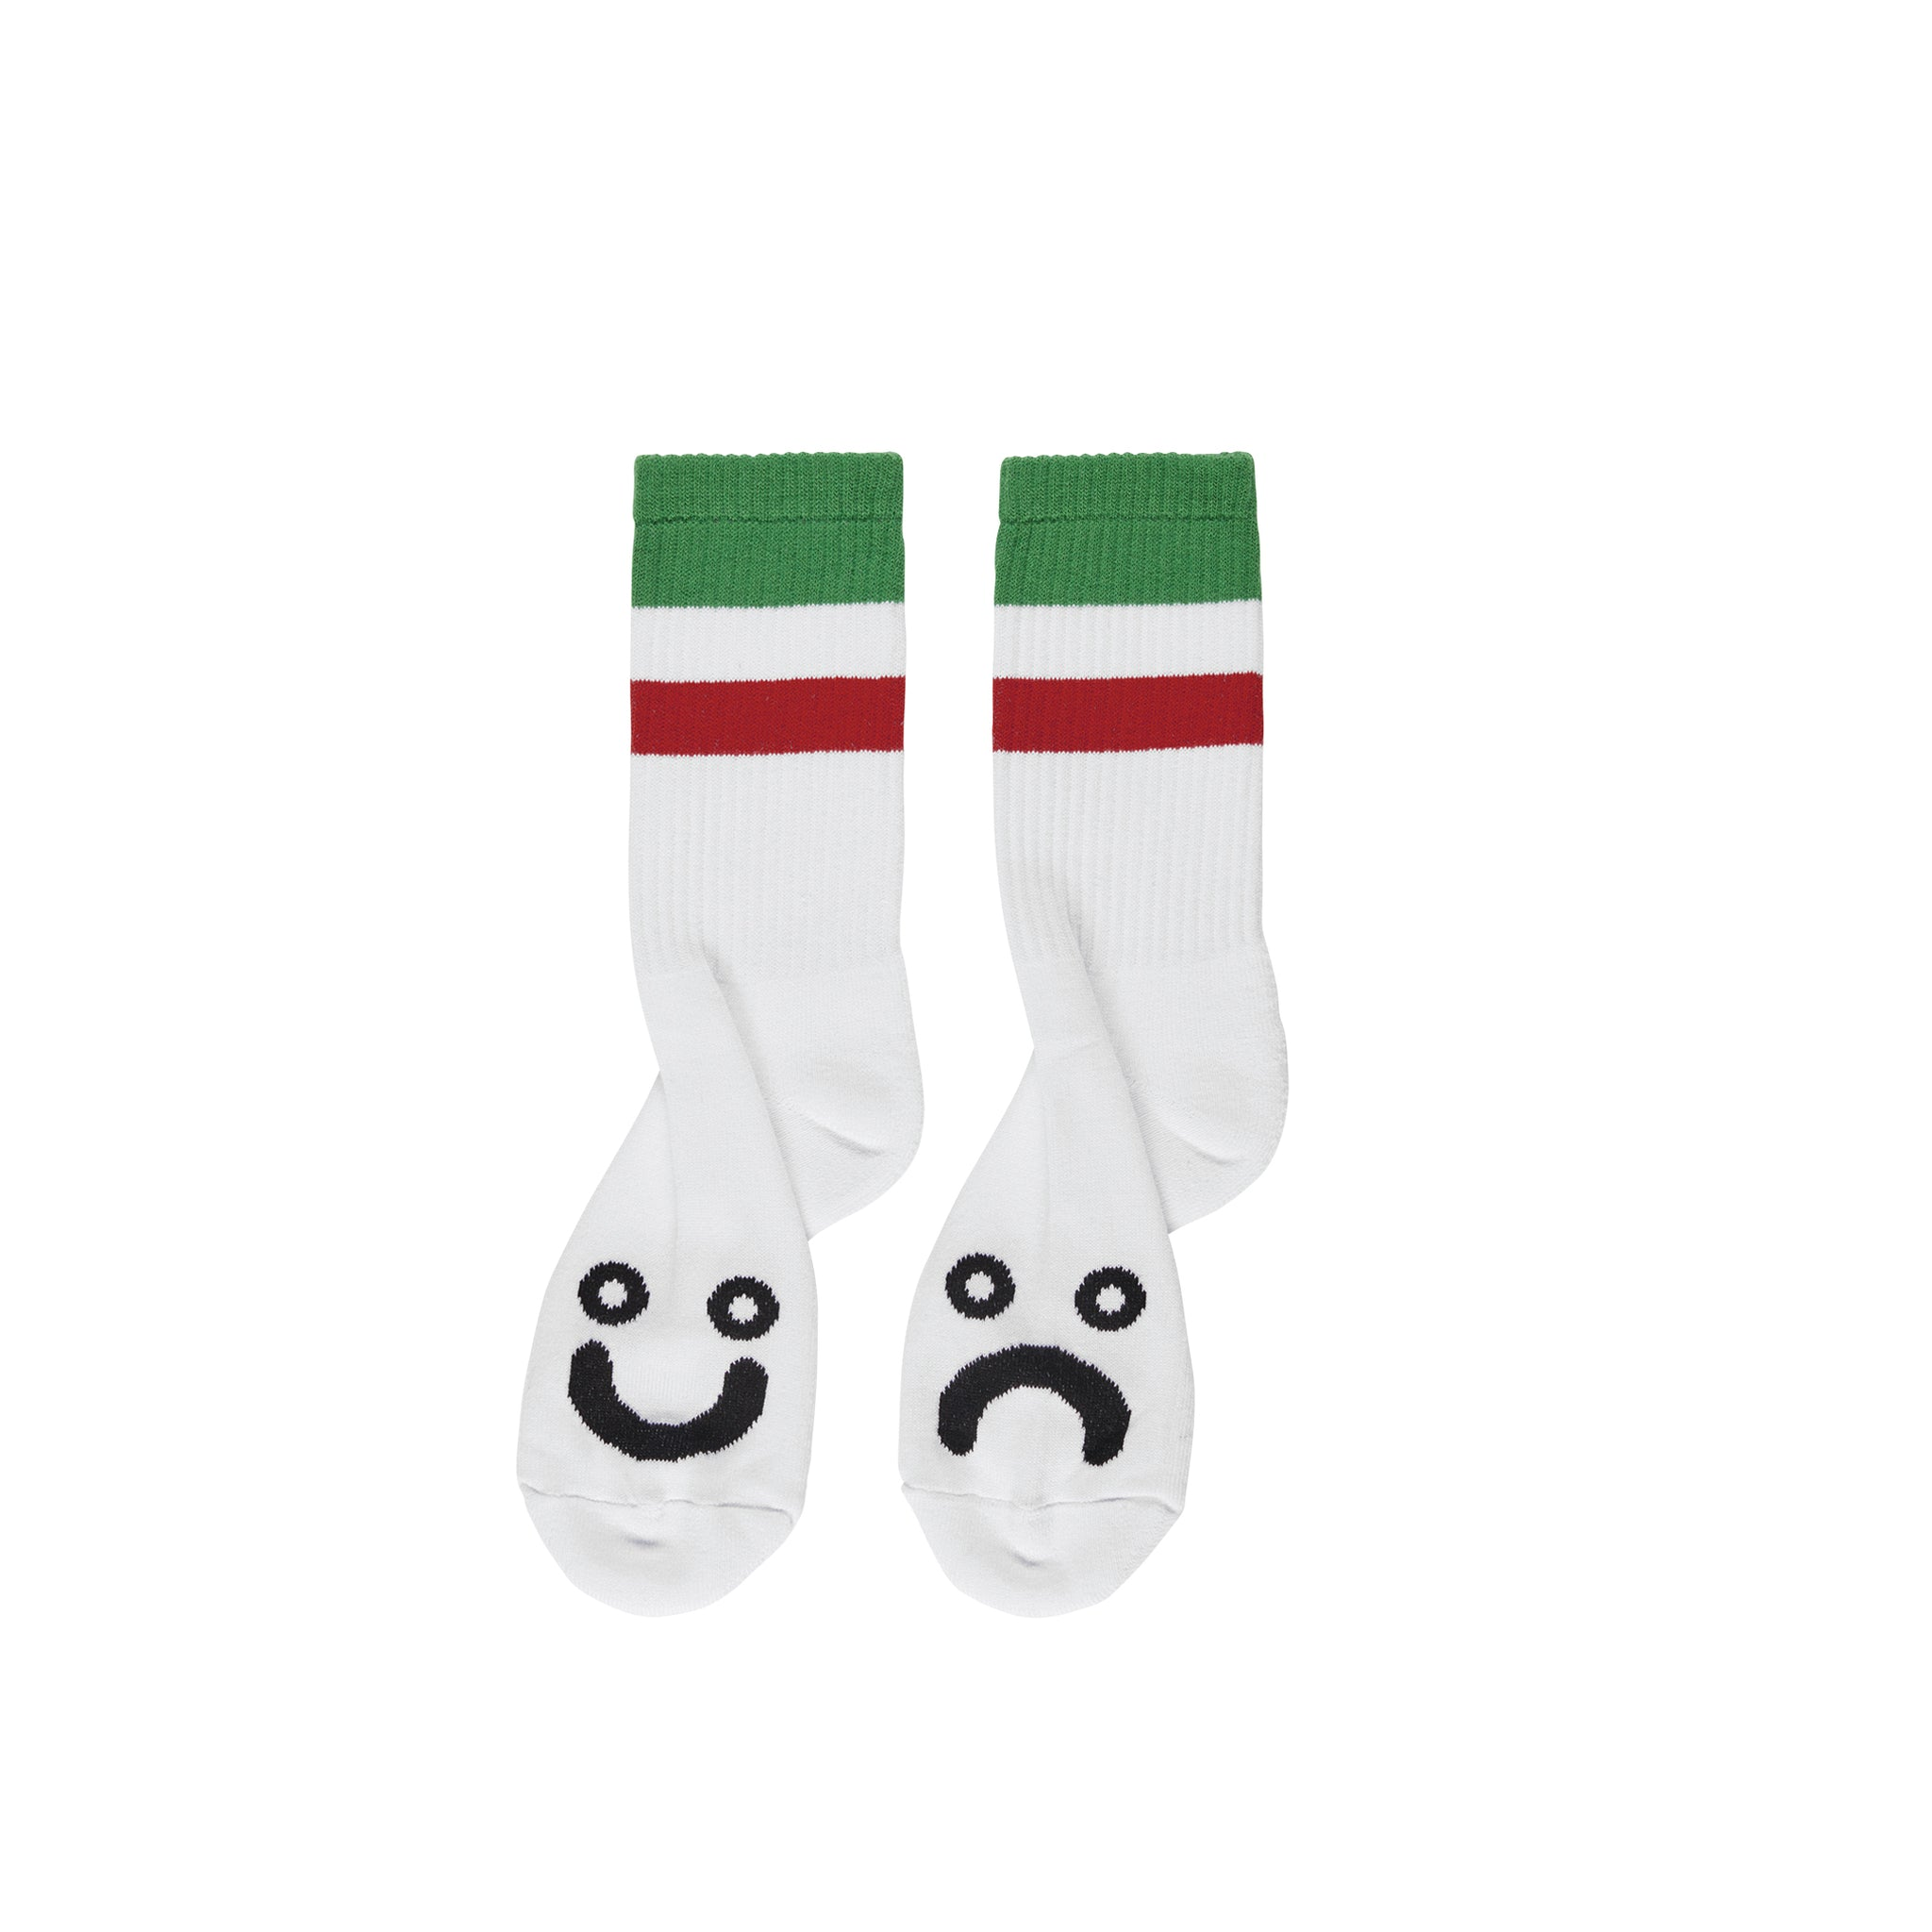 "POLAR - Happy Sad Socks Stripes ""Green/Red"""